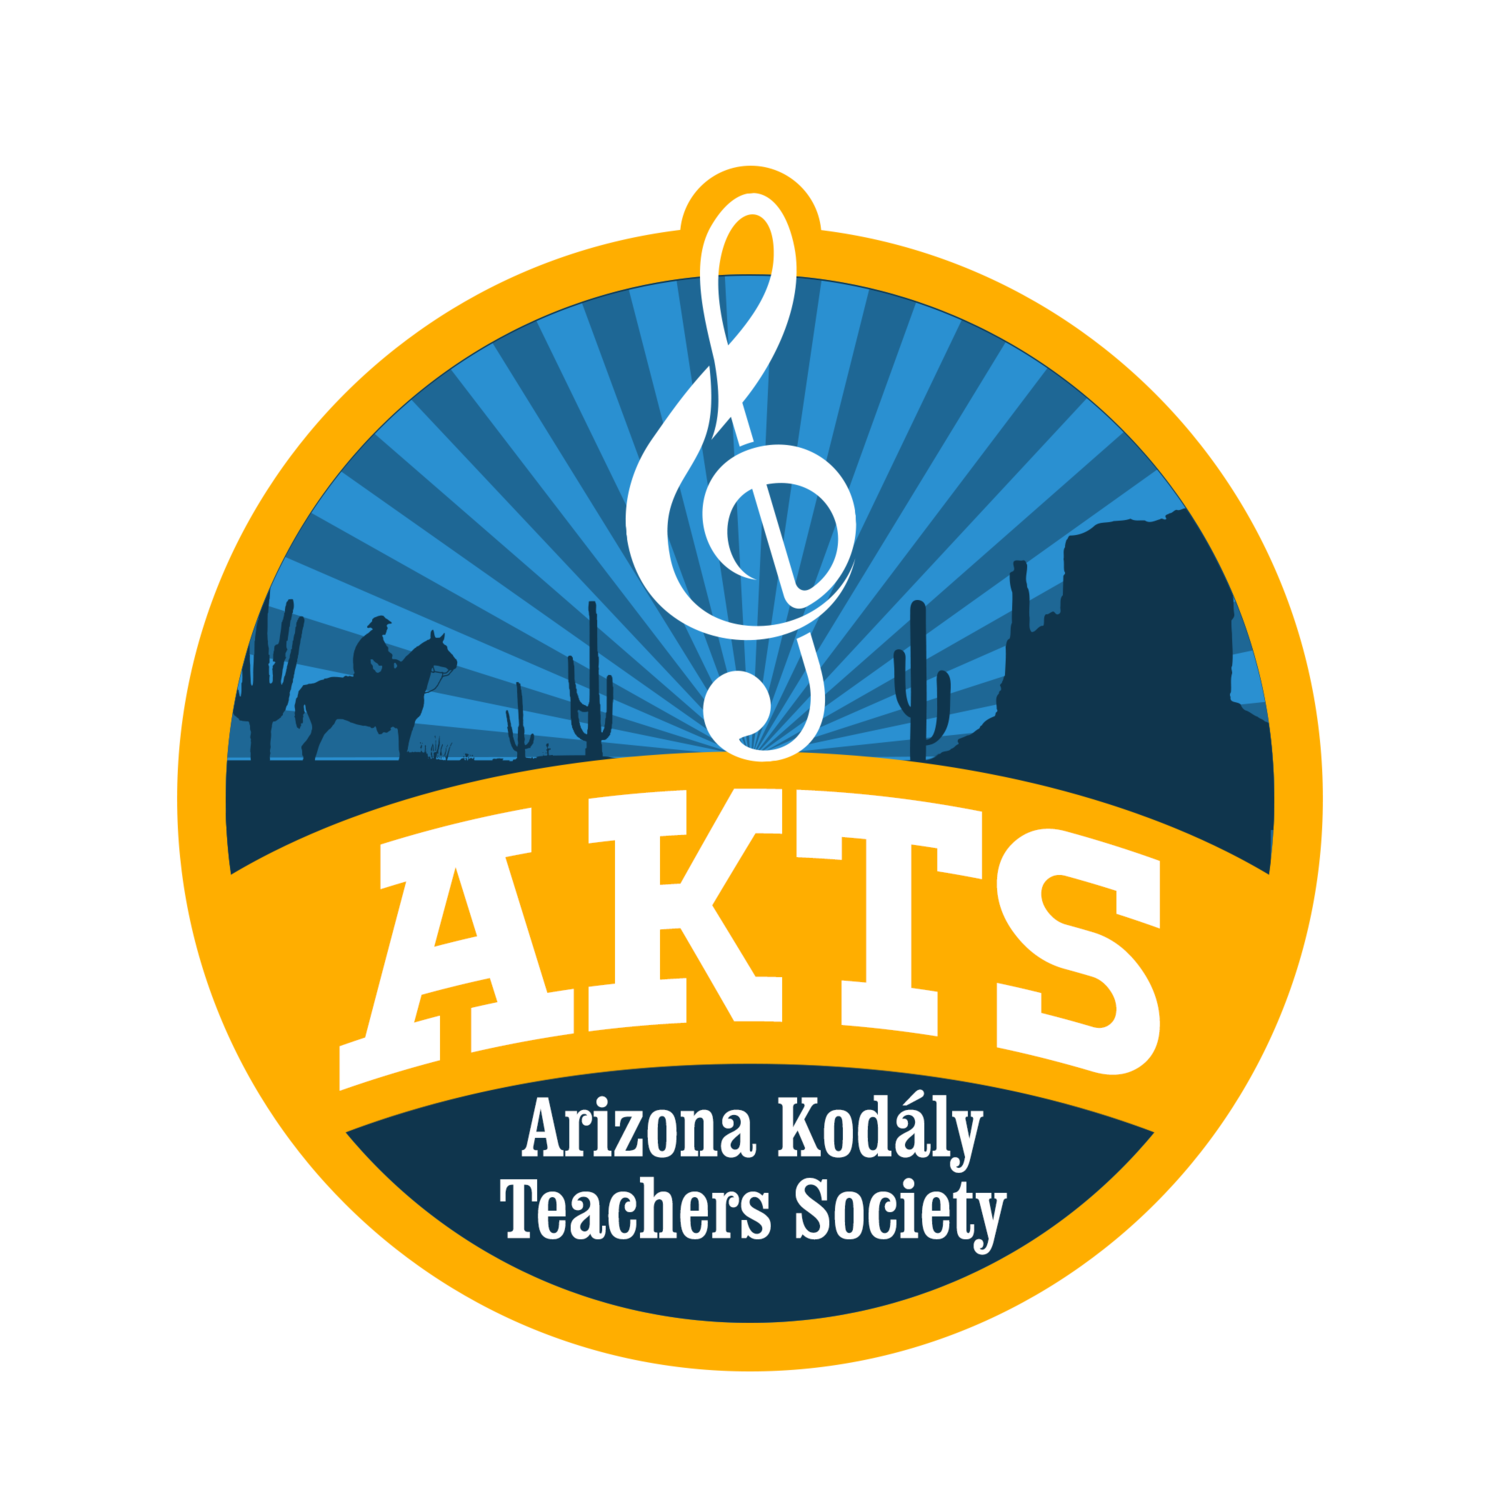 Arizona Kodly Teachers Society